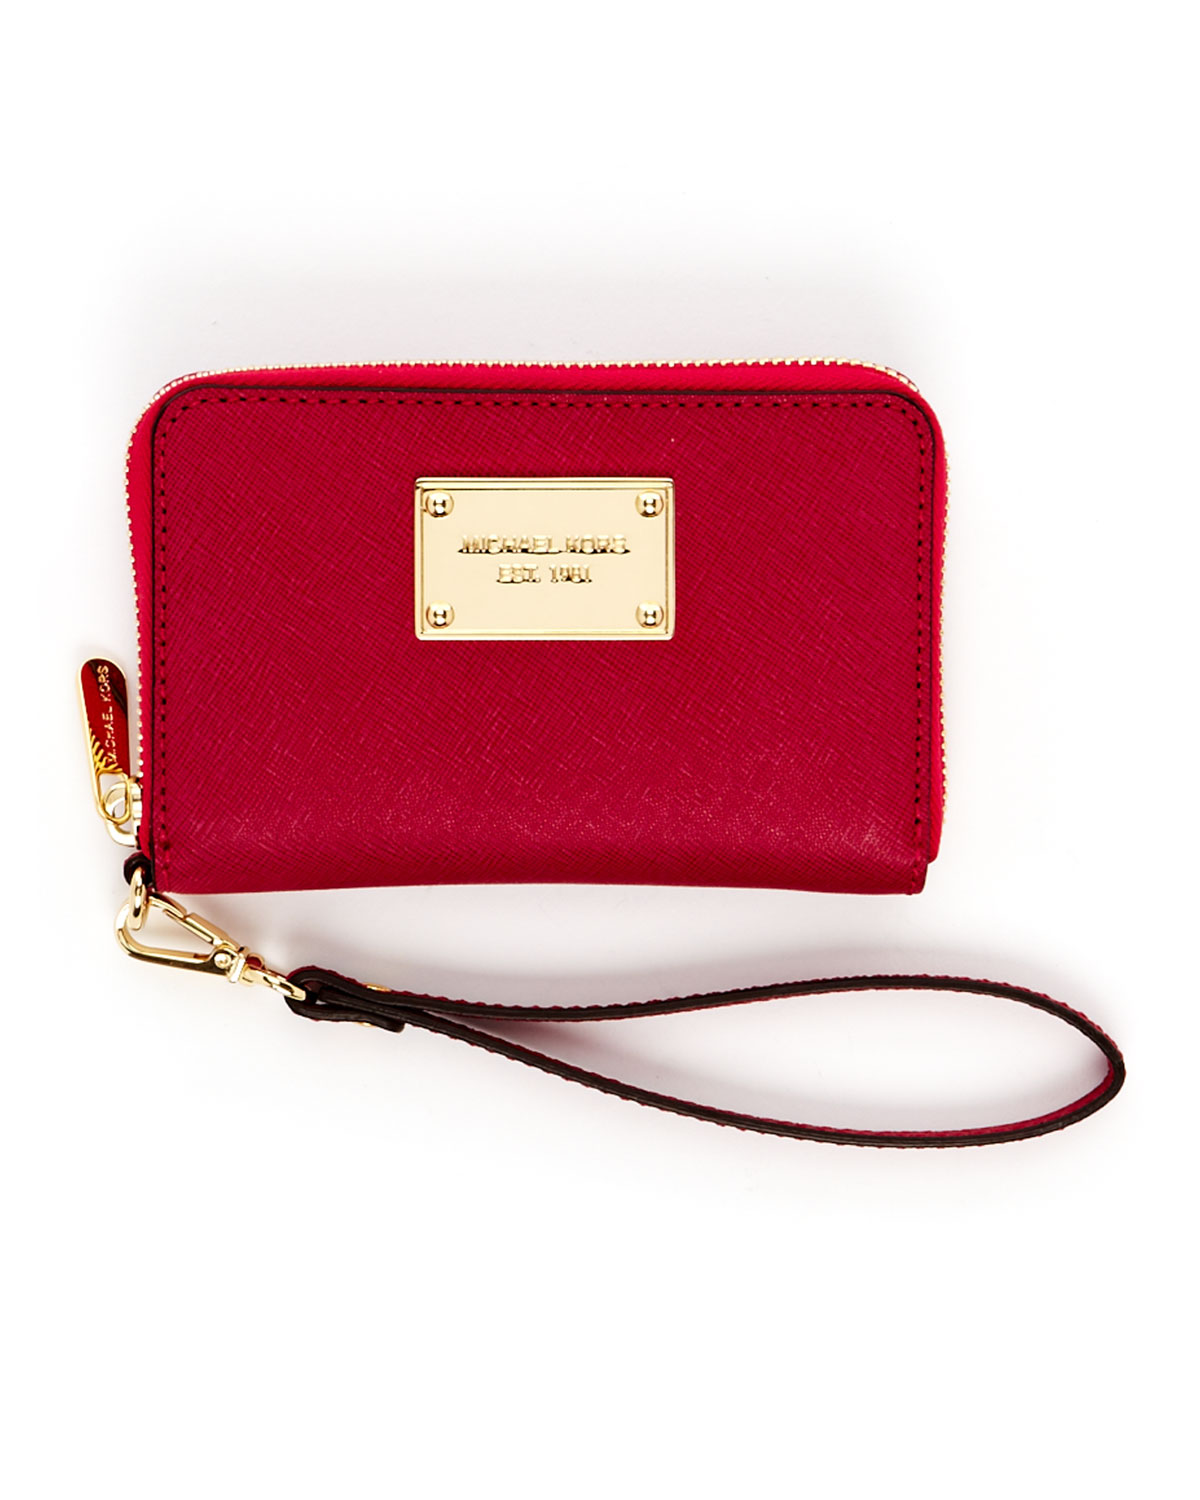 1895580a6b49 Michael Kors Saffiano Wallet Pink | Stanford Center for Opportunity ...